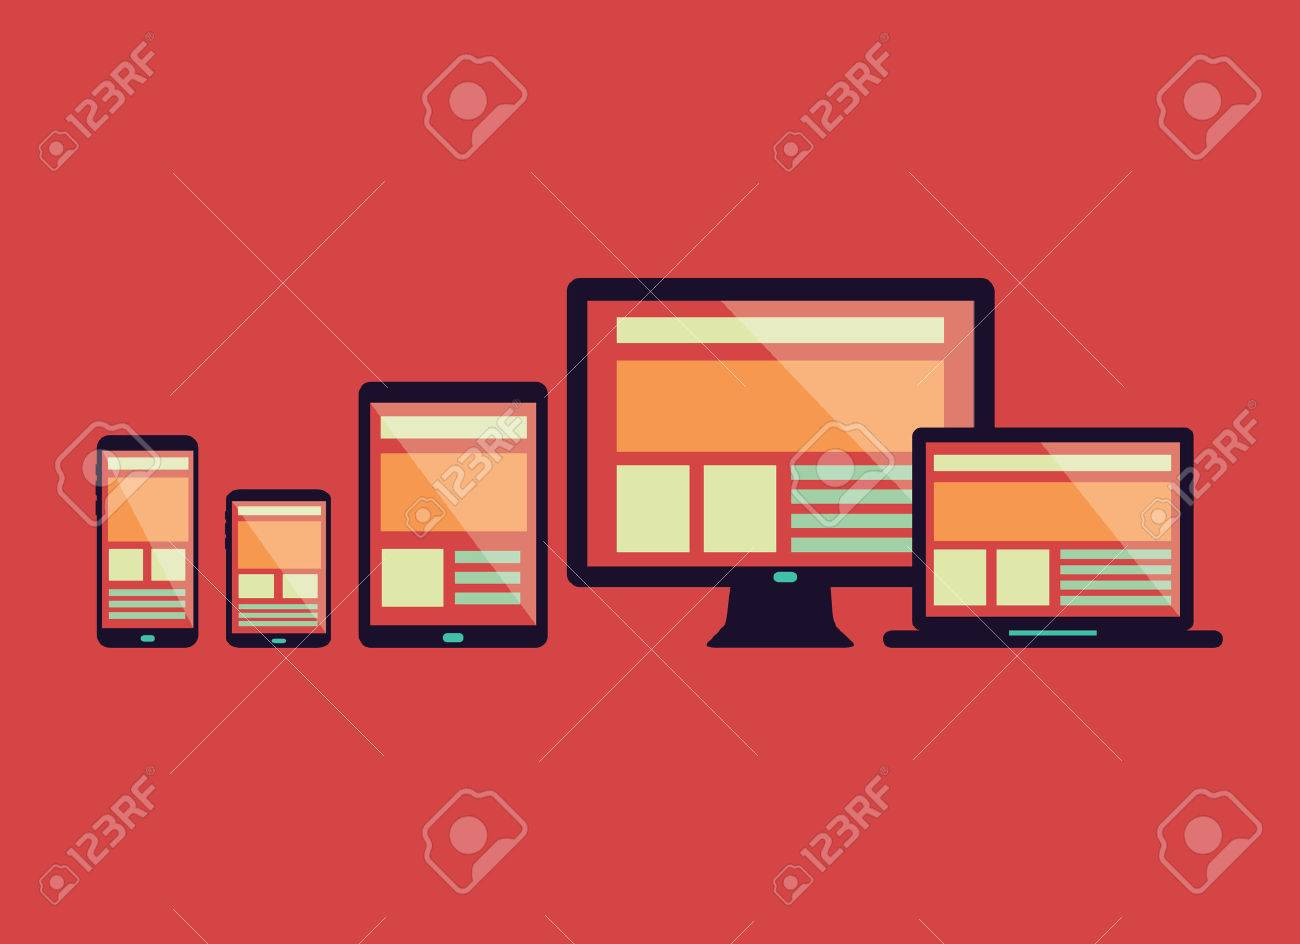 Responsive web design in electronic devices Connect social network flat design element vector - 30135304